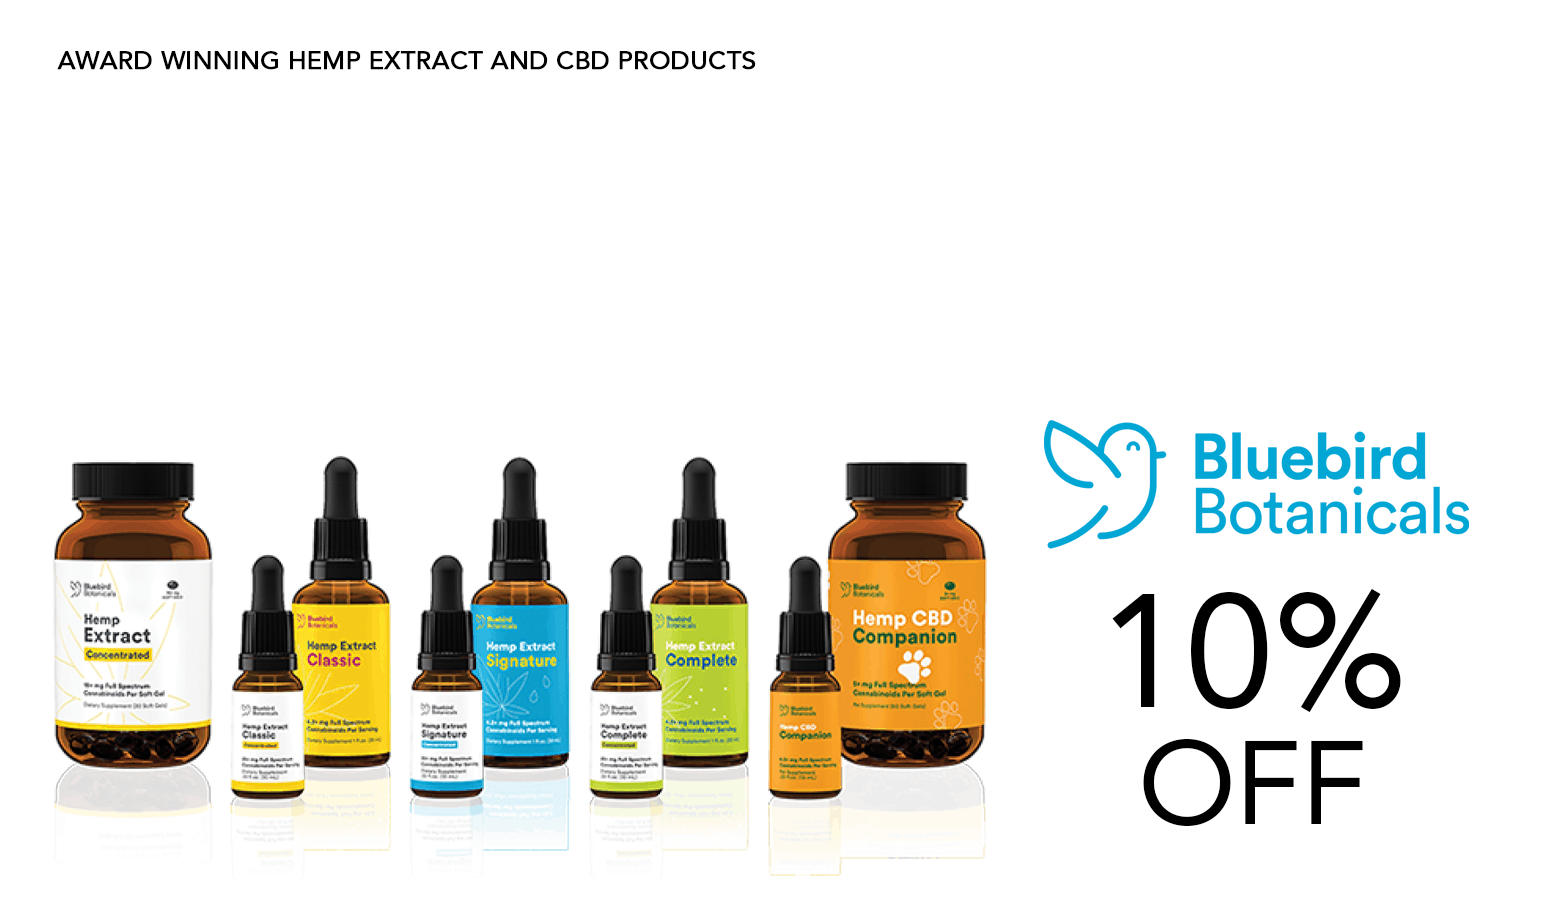 Bluebird Botanicals CBD Coupon Code 10 Percent Off Discount